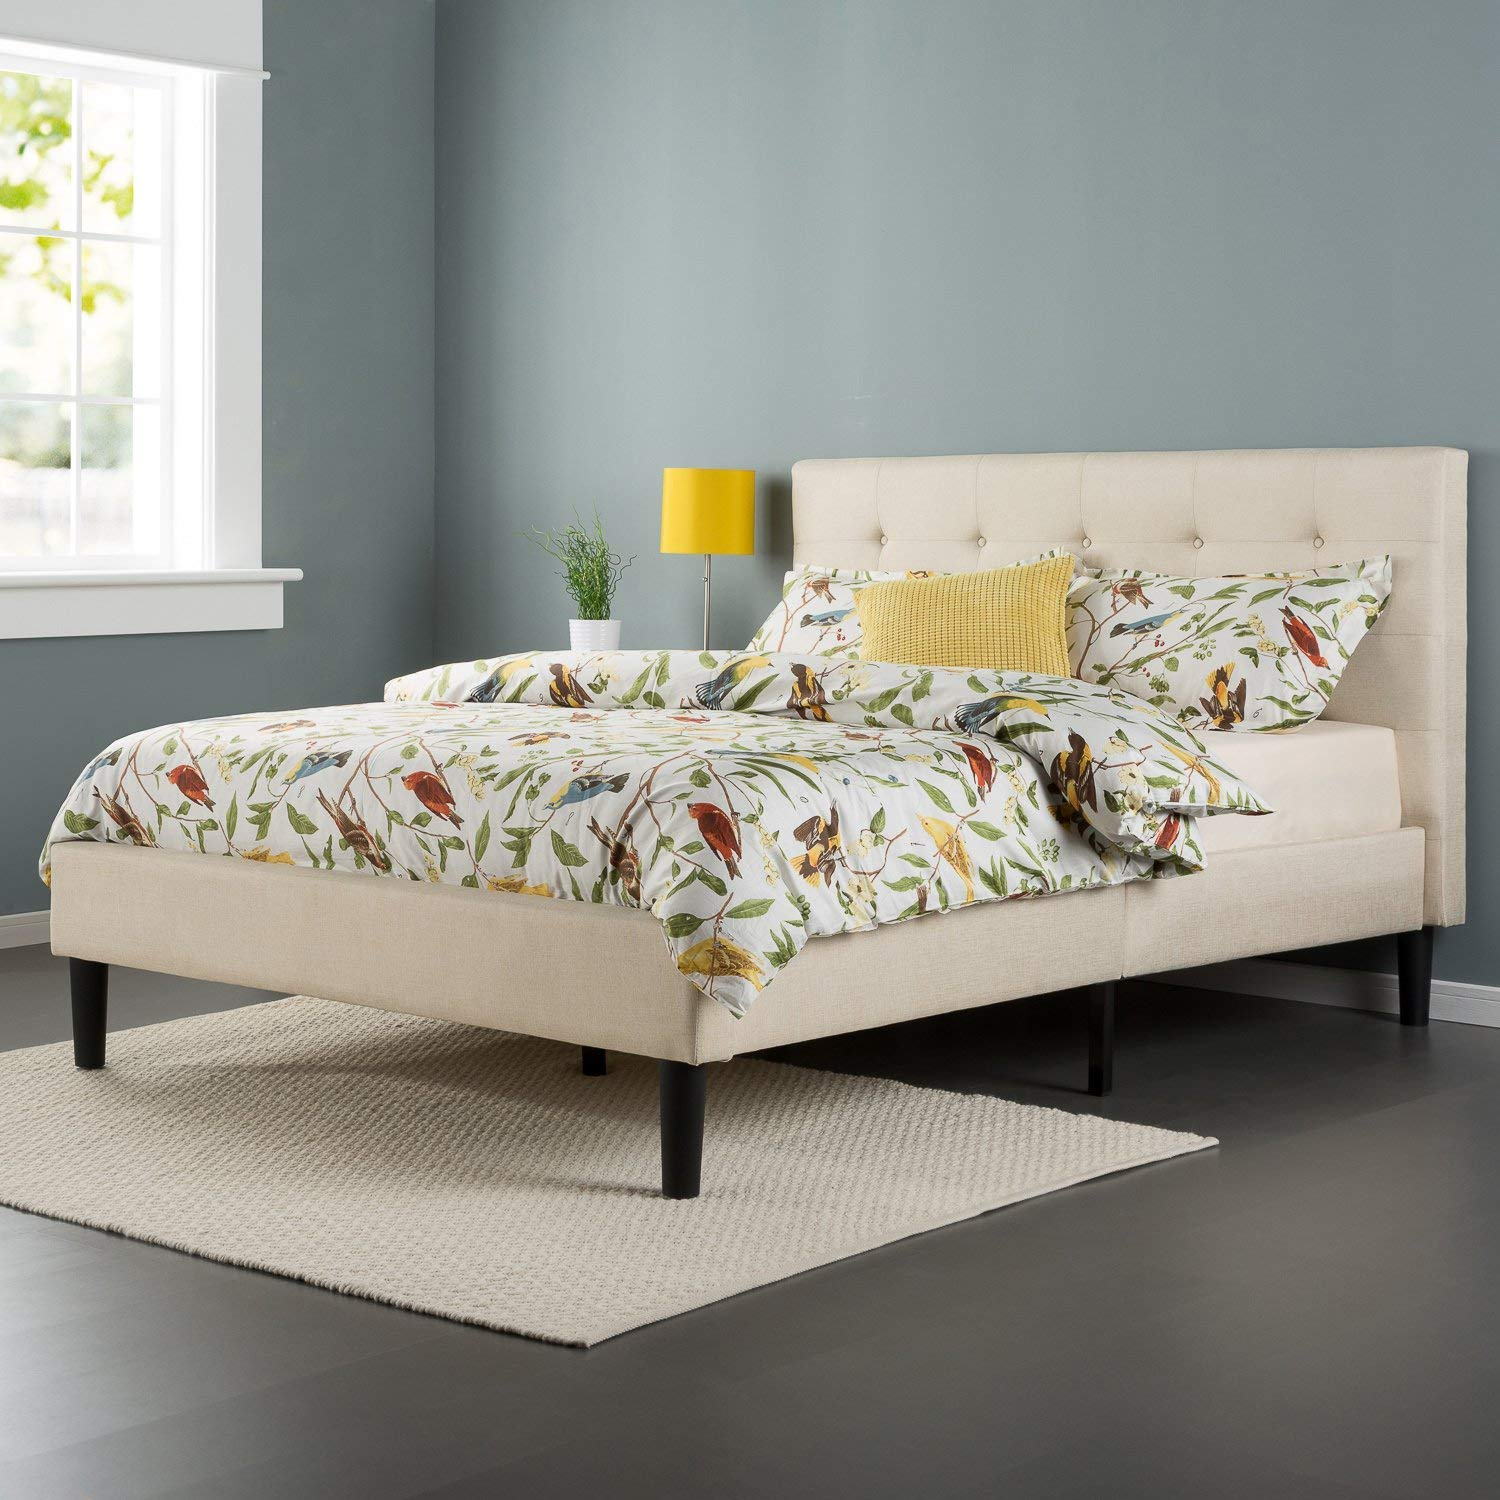 Zinus Upholstered Button Tufted Platform Bed